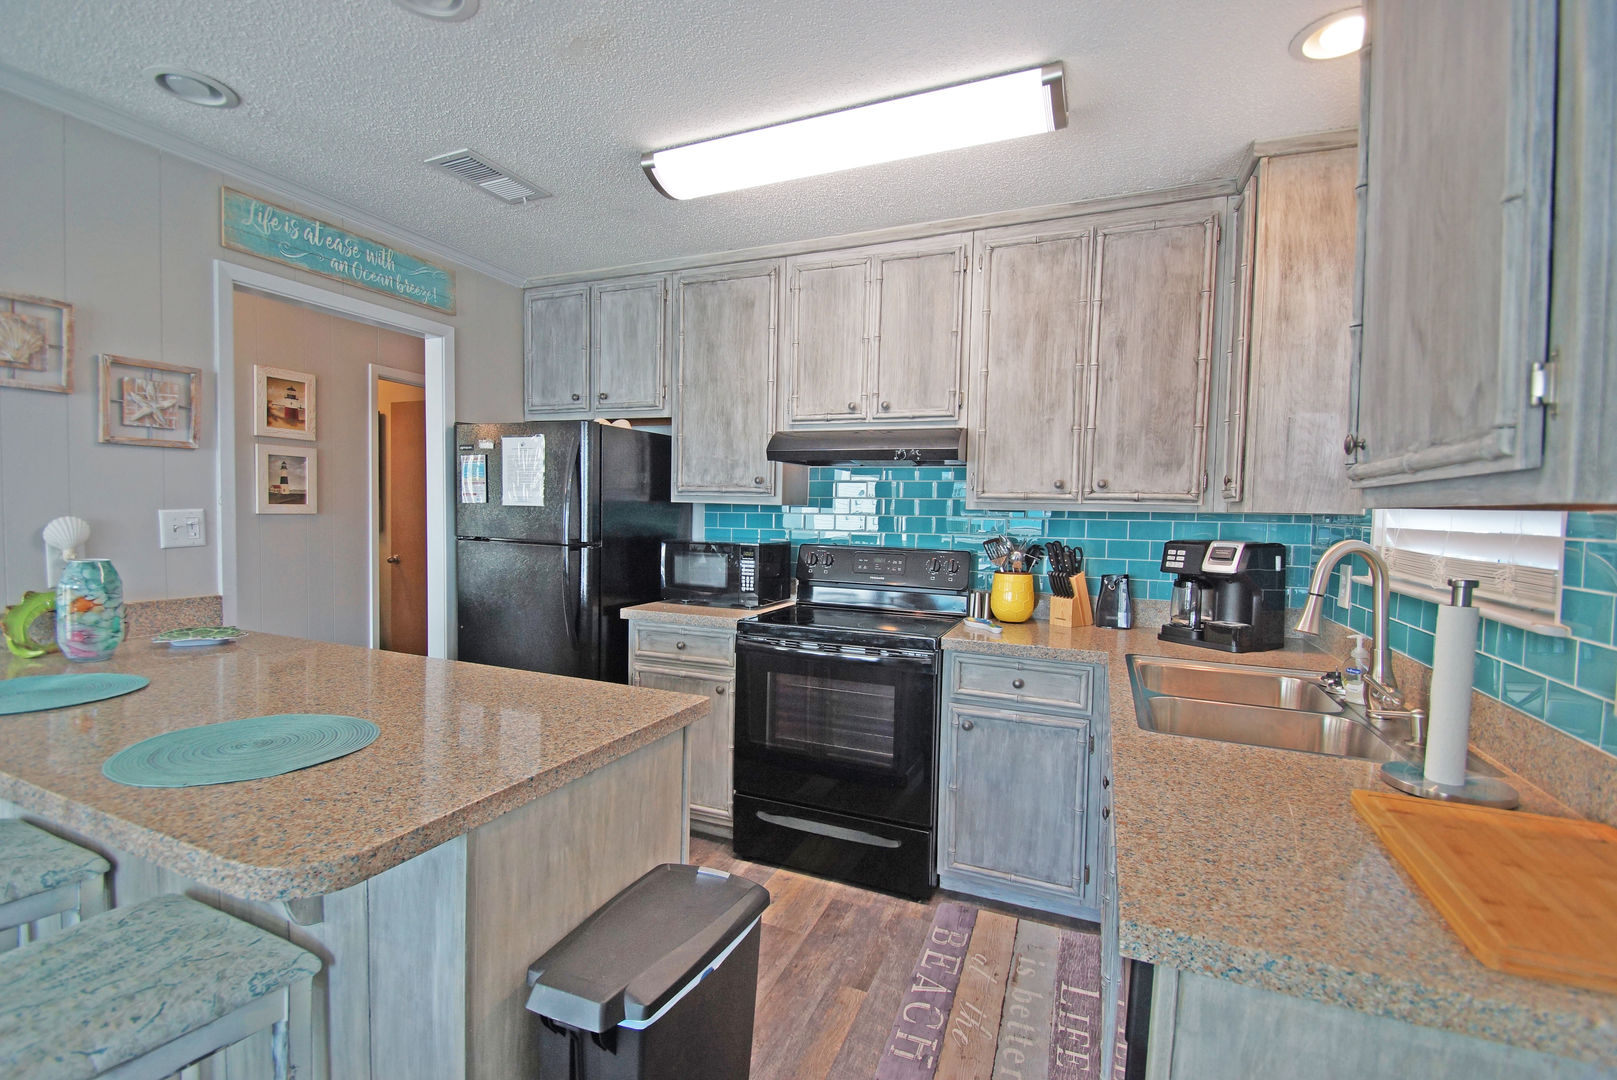 Kitchen with Counter, Refrigerator, Microwave, and Coffee Maker.